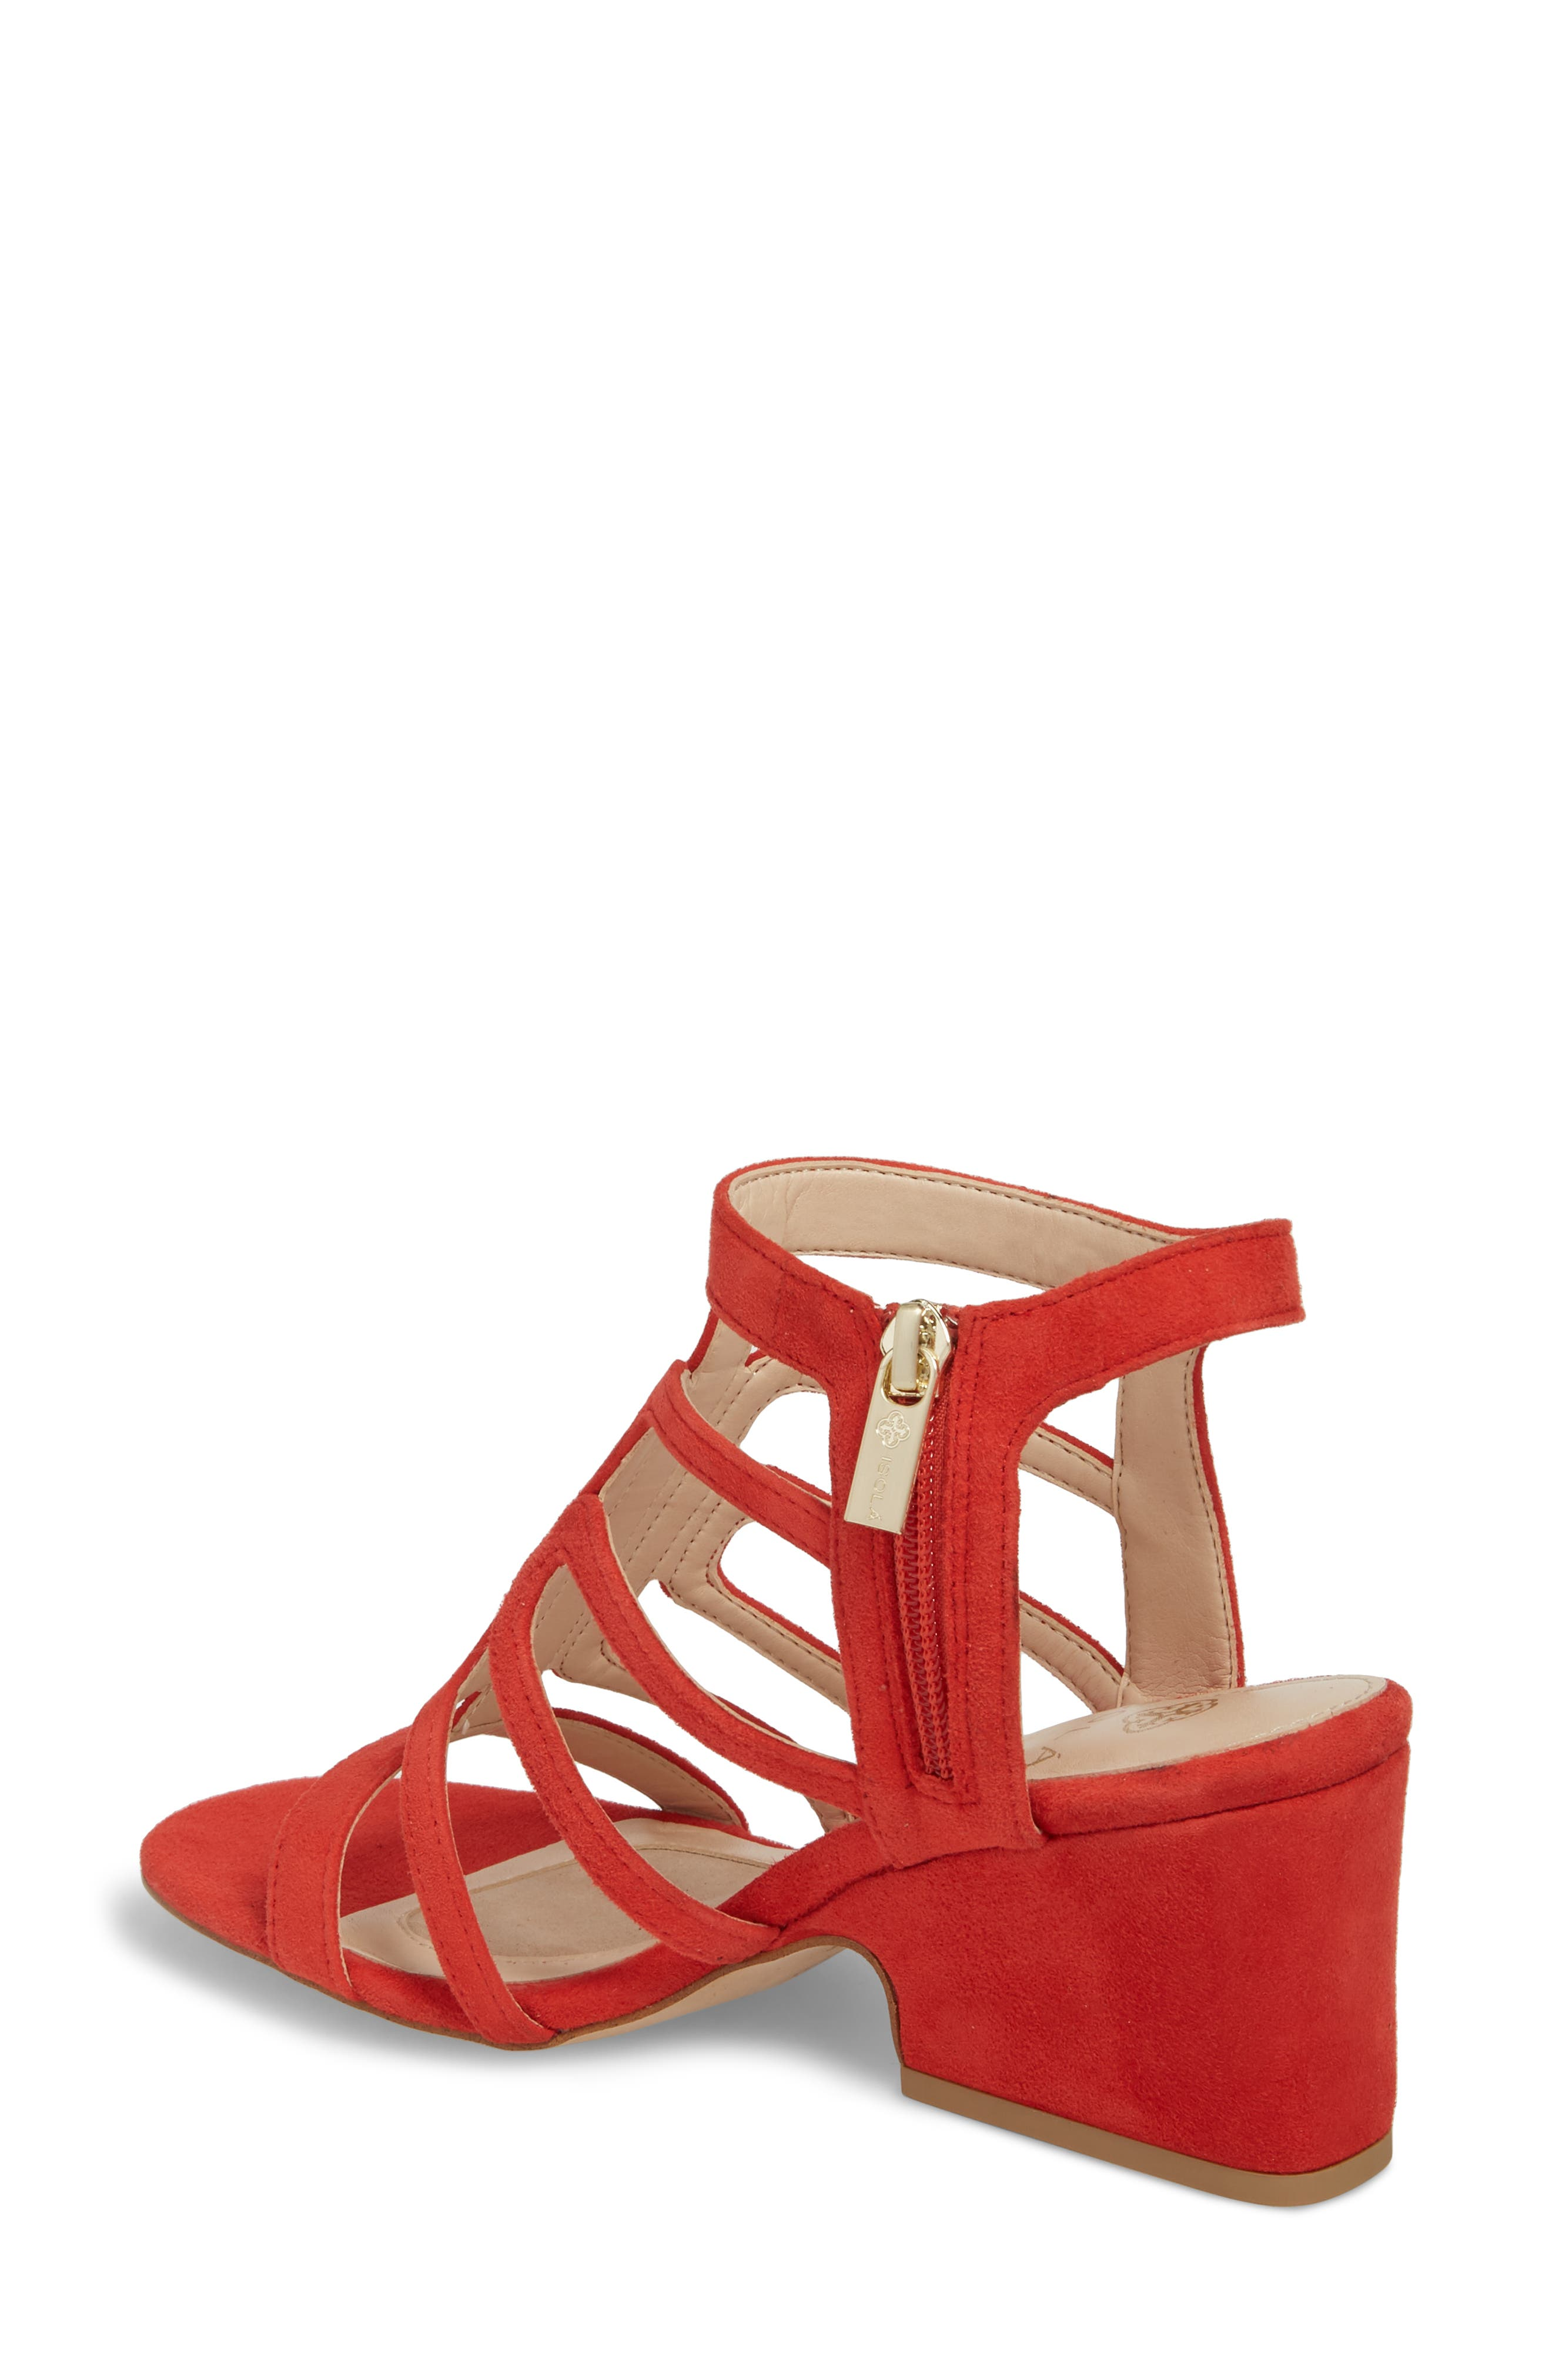 Lina Sandal,                             Alternate thumbnail 2, color,                             Lipstick Red Suede